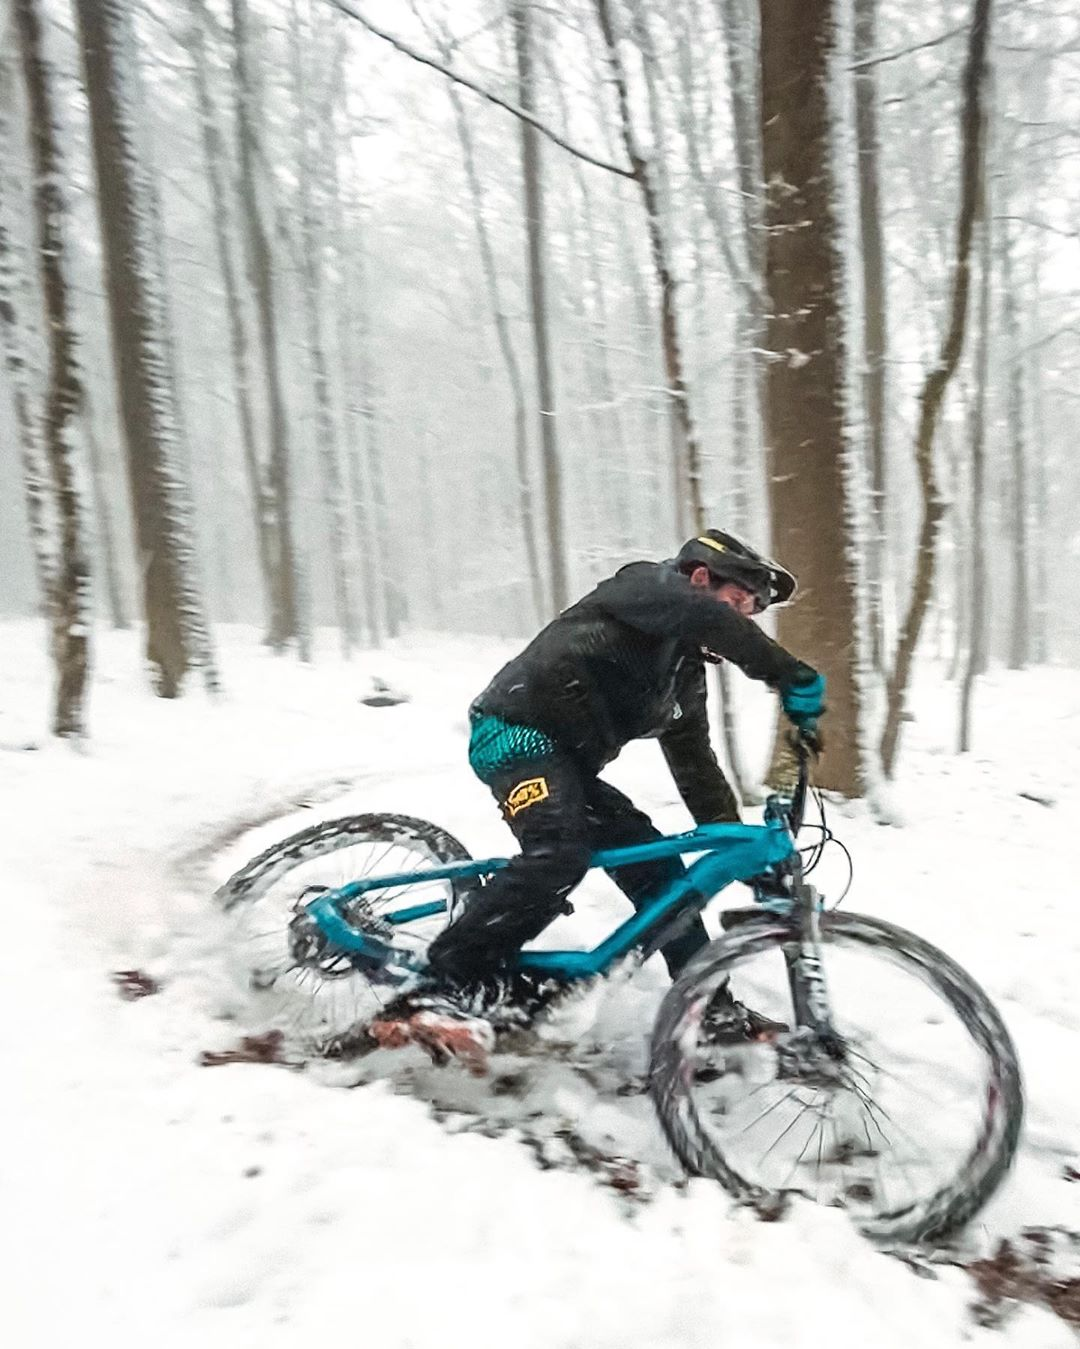 Snow berms are better than no berms! #ride100percent #emtb #eebit #haibike #allmtn #enduro #snow 📷 @paddisalmon